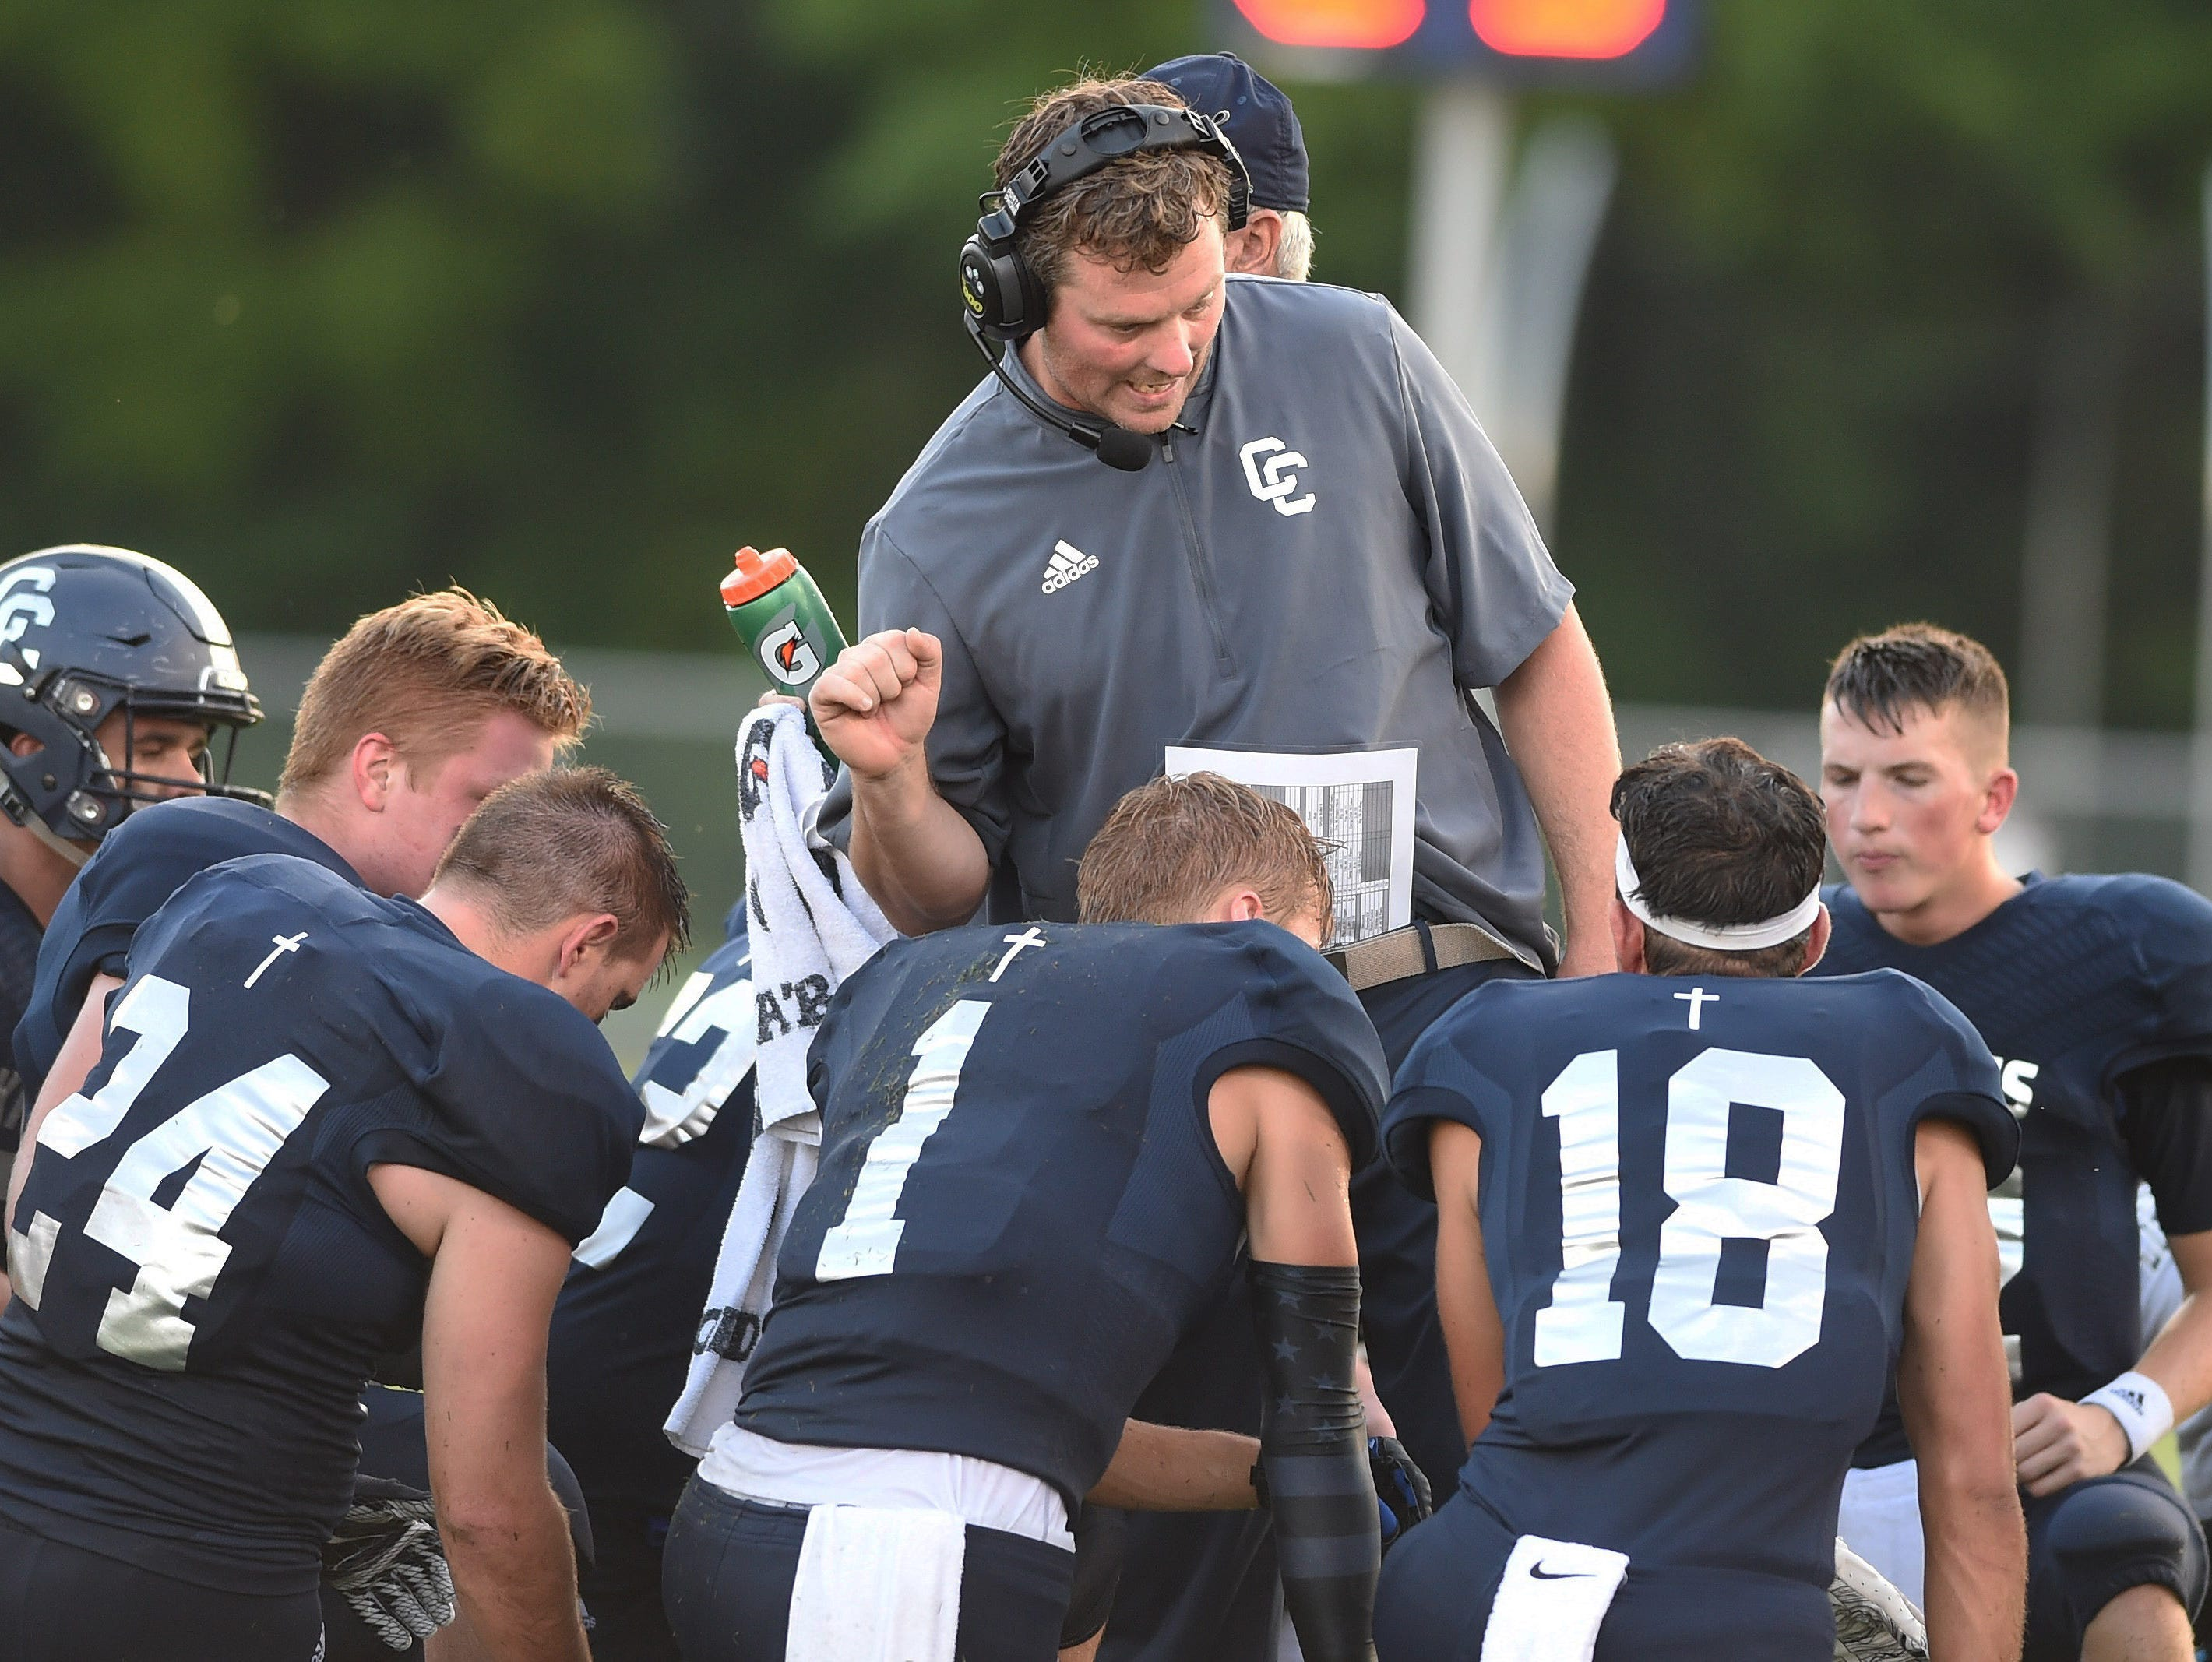 Central Catholic coach Brian Nay talks to his team during a break in the season opener against Tri-West.